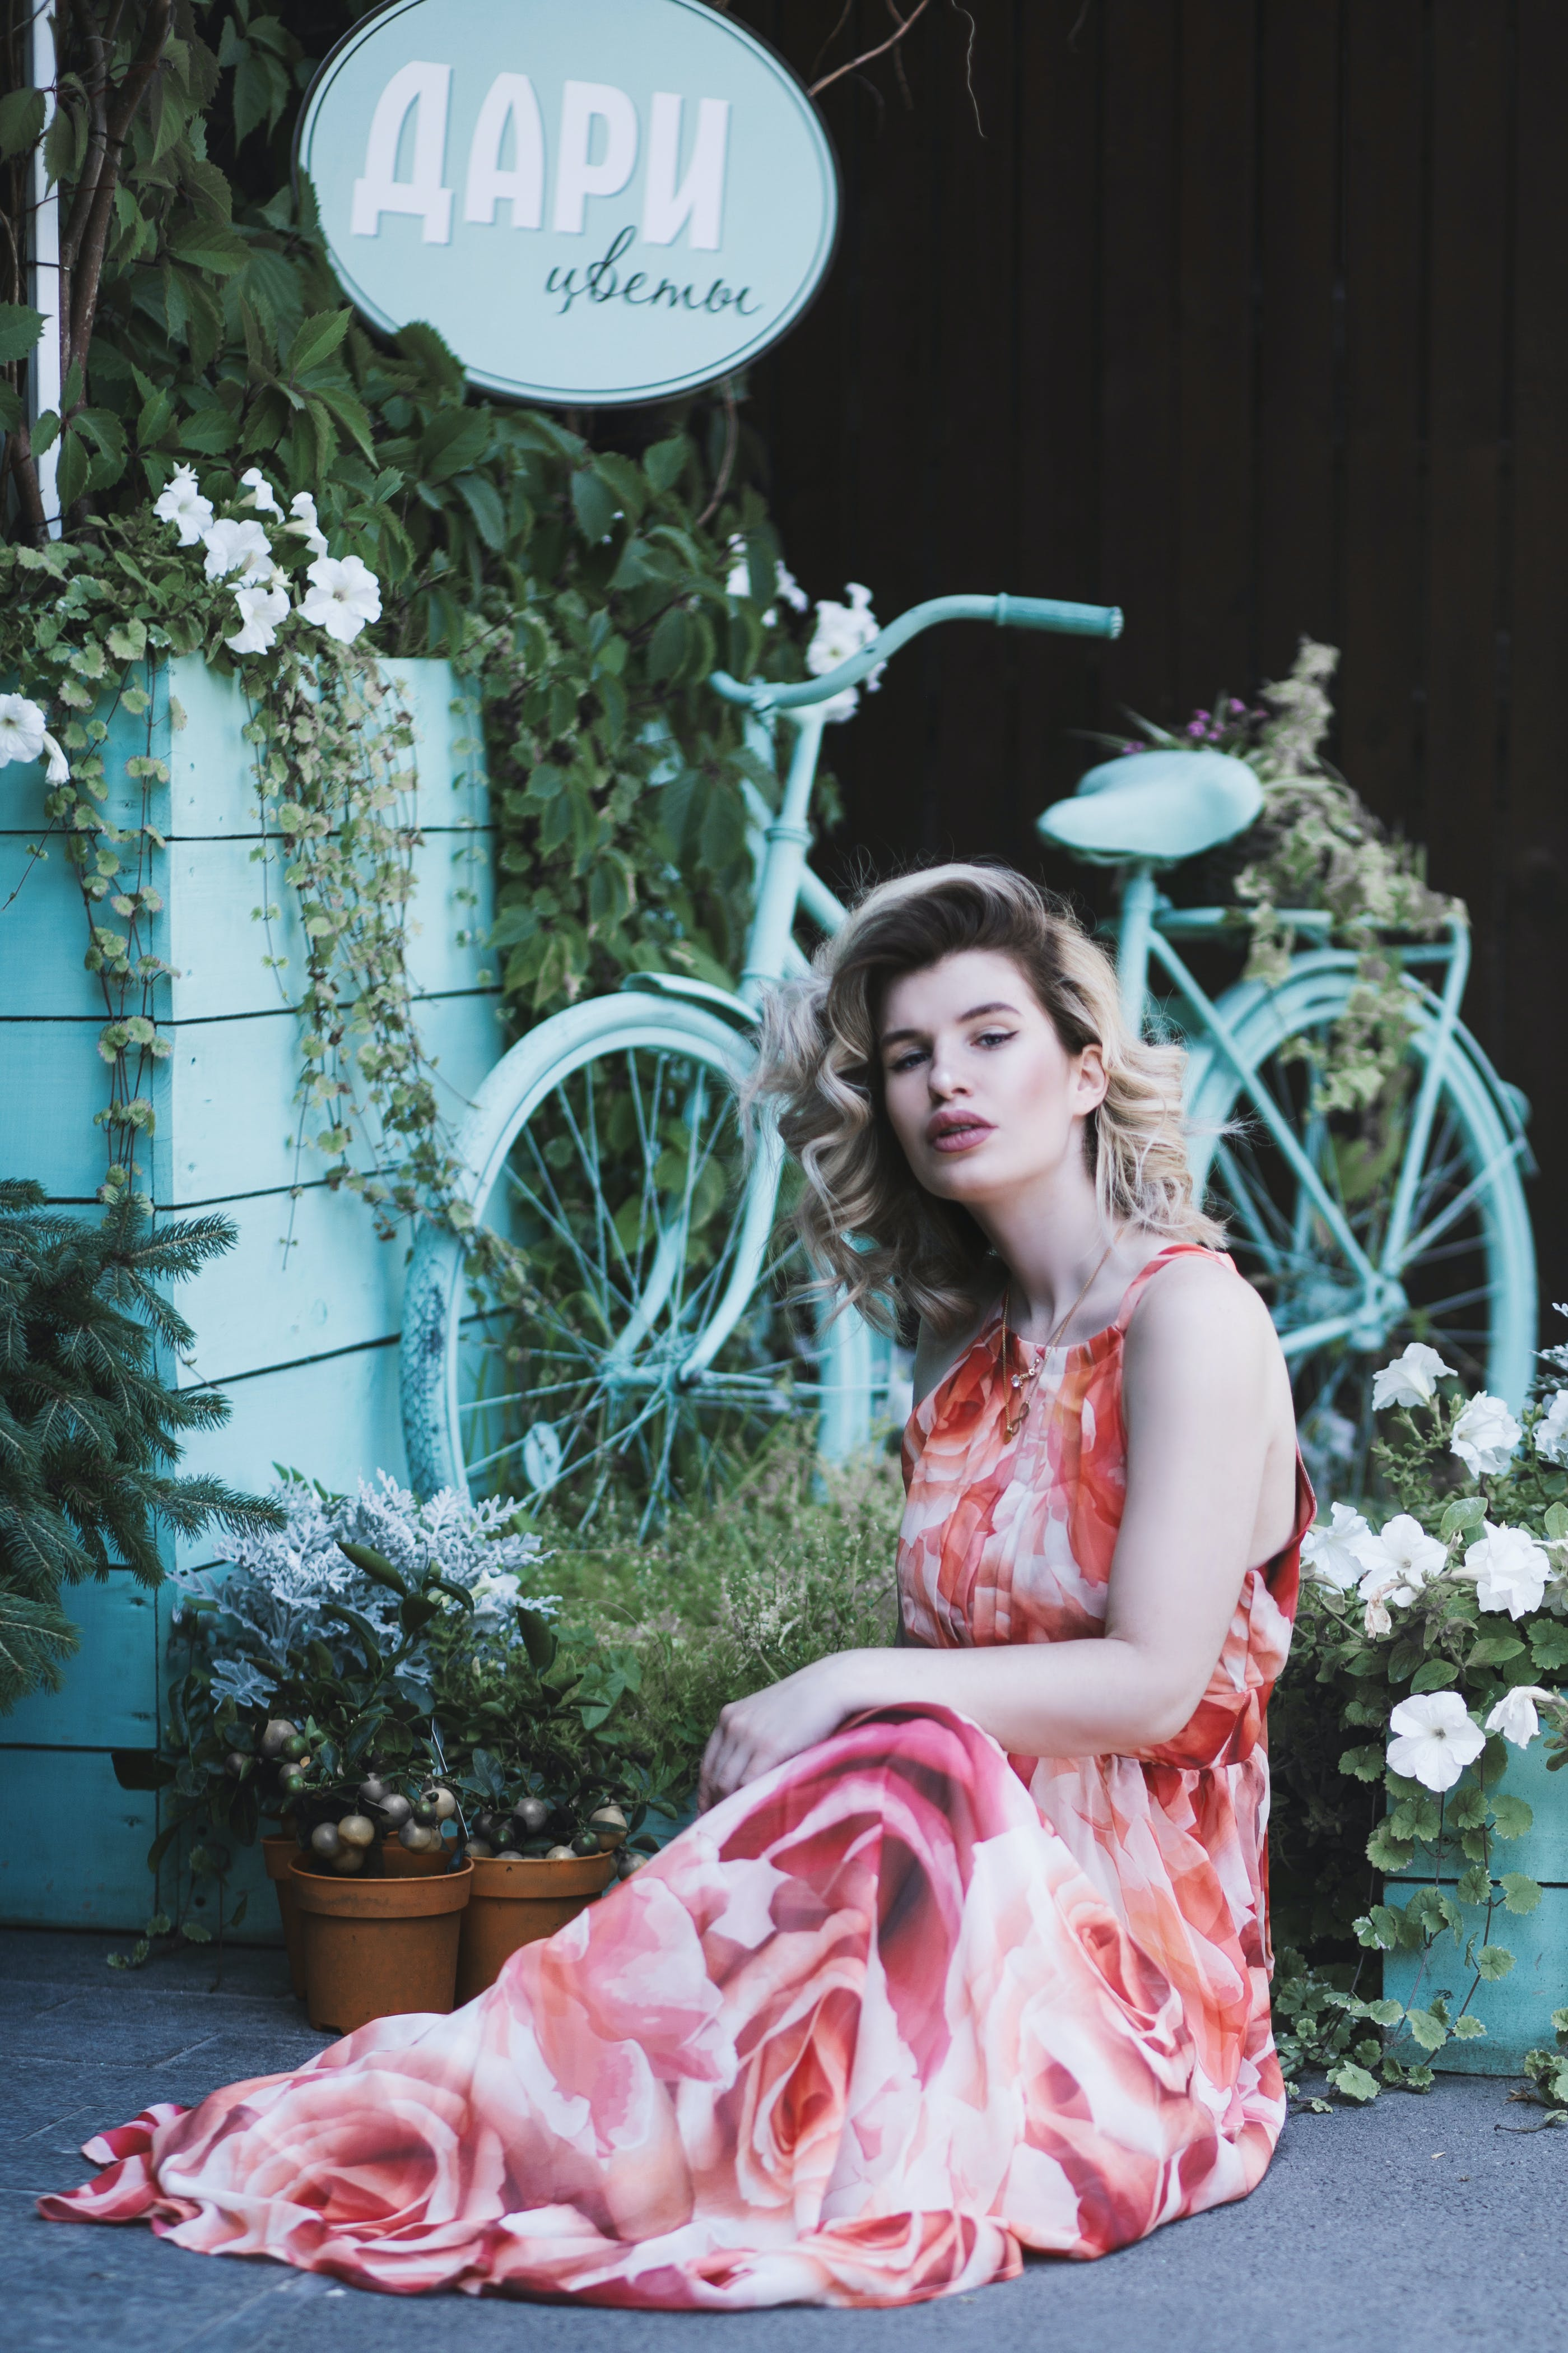 Woman in Floral Dress Sitting Near Plants and Bicylce